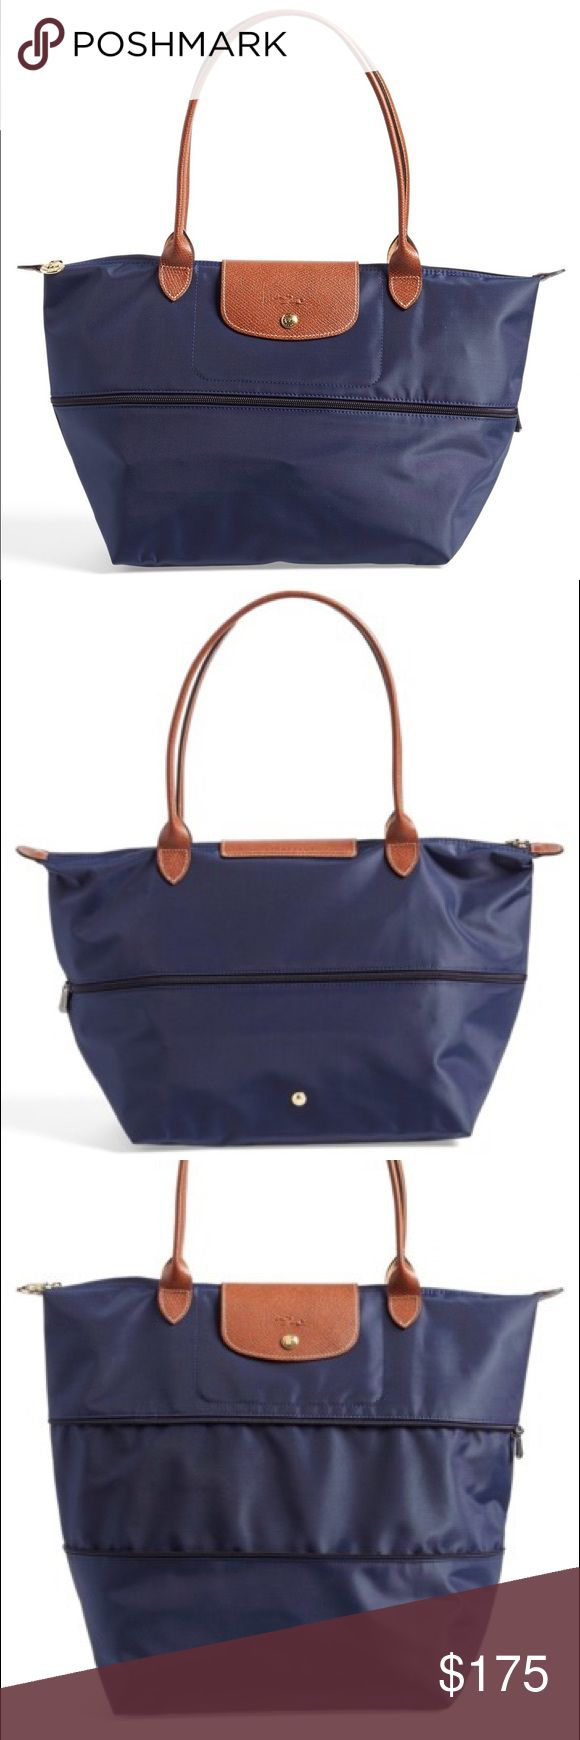 Longchamp 'Le Pliage' Expandable Tote (Navy) Brand new longchamp water-resistant nylon tote with leather trim. Provides extra space with zipper expansion. Longchamp Bags Totes